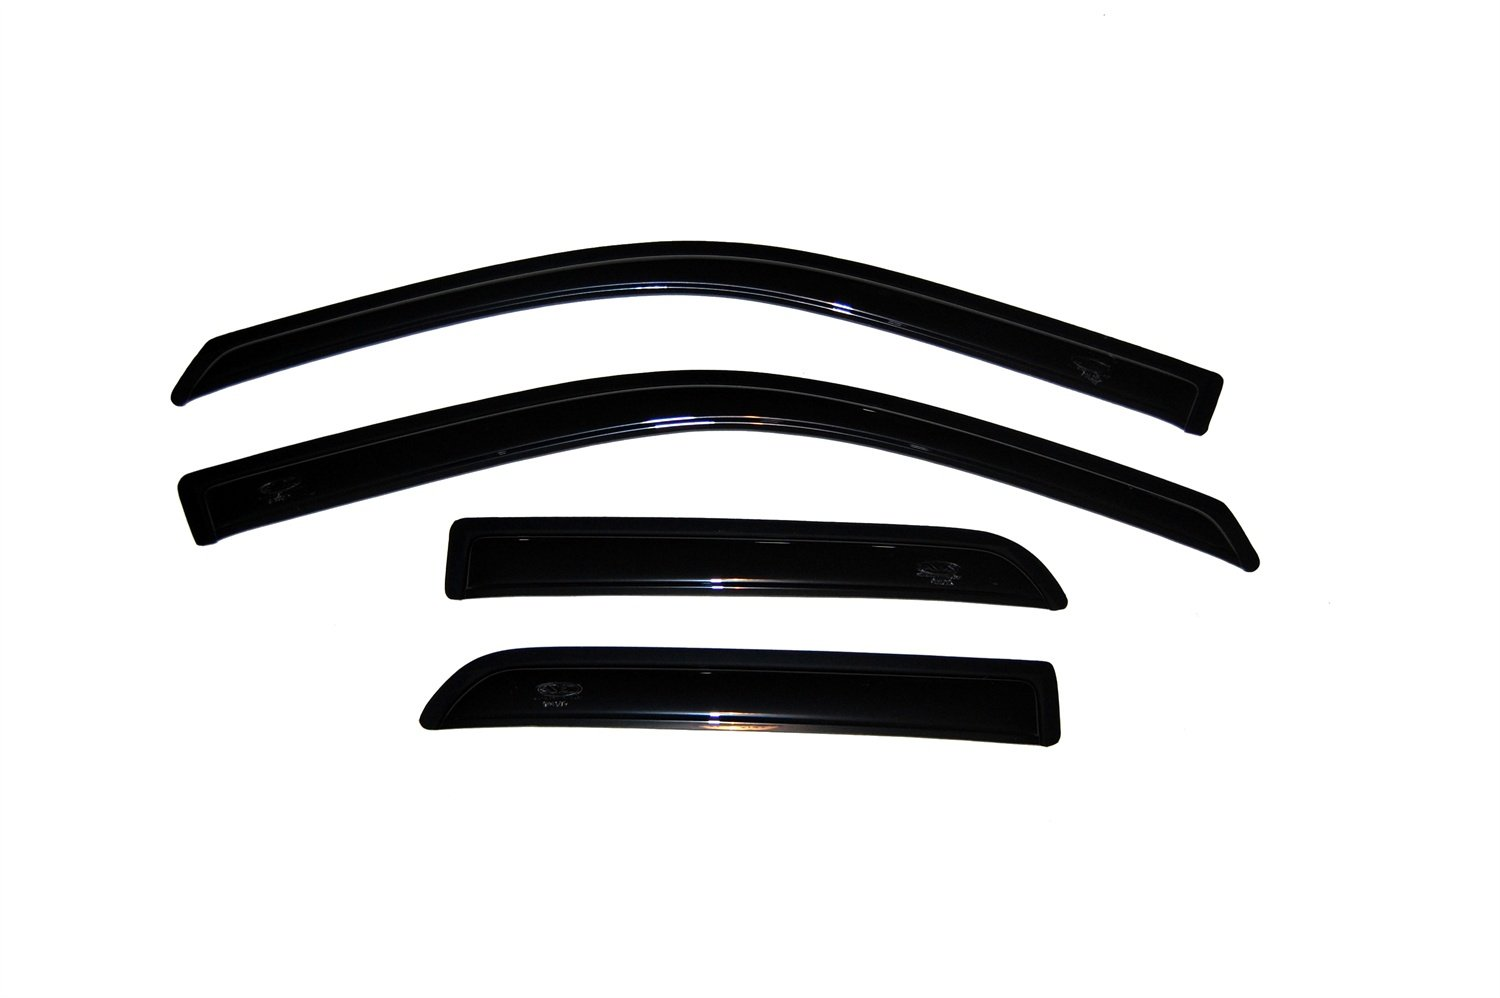 Auto Ventshade 94101 Original Ventvisor Side Window Deflector Dark Smoke, 4-Piece Set for 2009-2018 Dodge Ram 1500; 2019 Ram 1500 Classic , Fits Quad Cab by Auto Ventshade